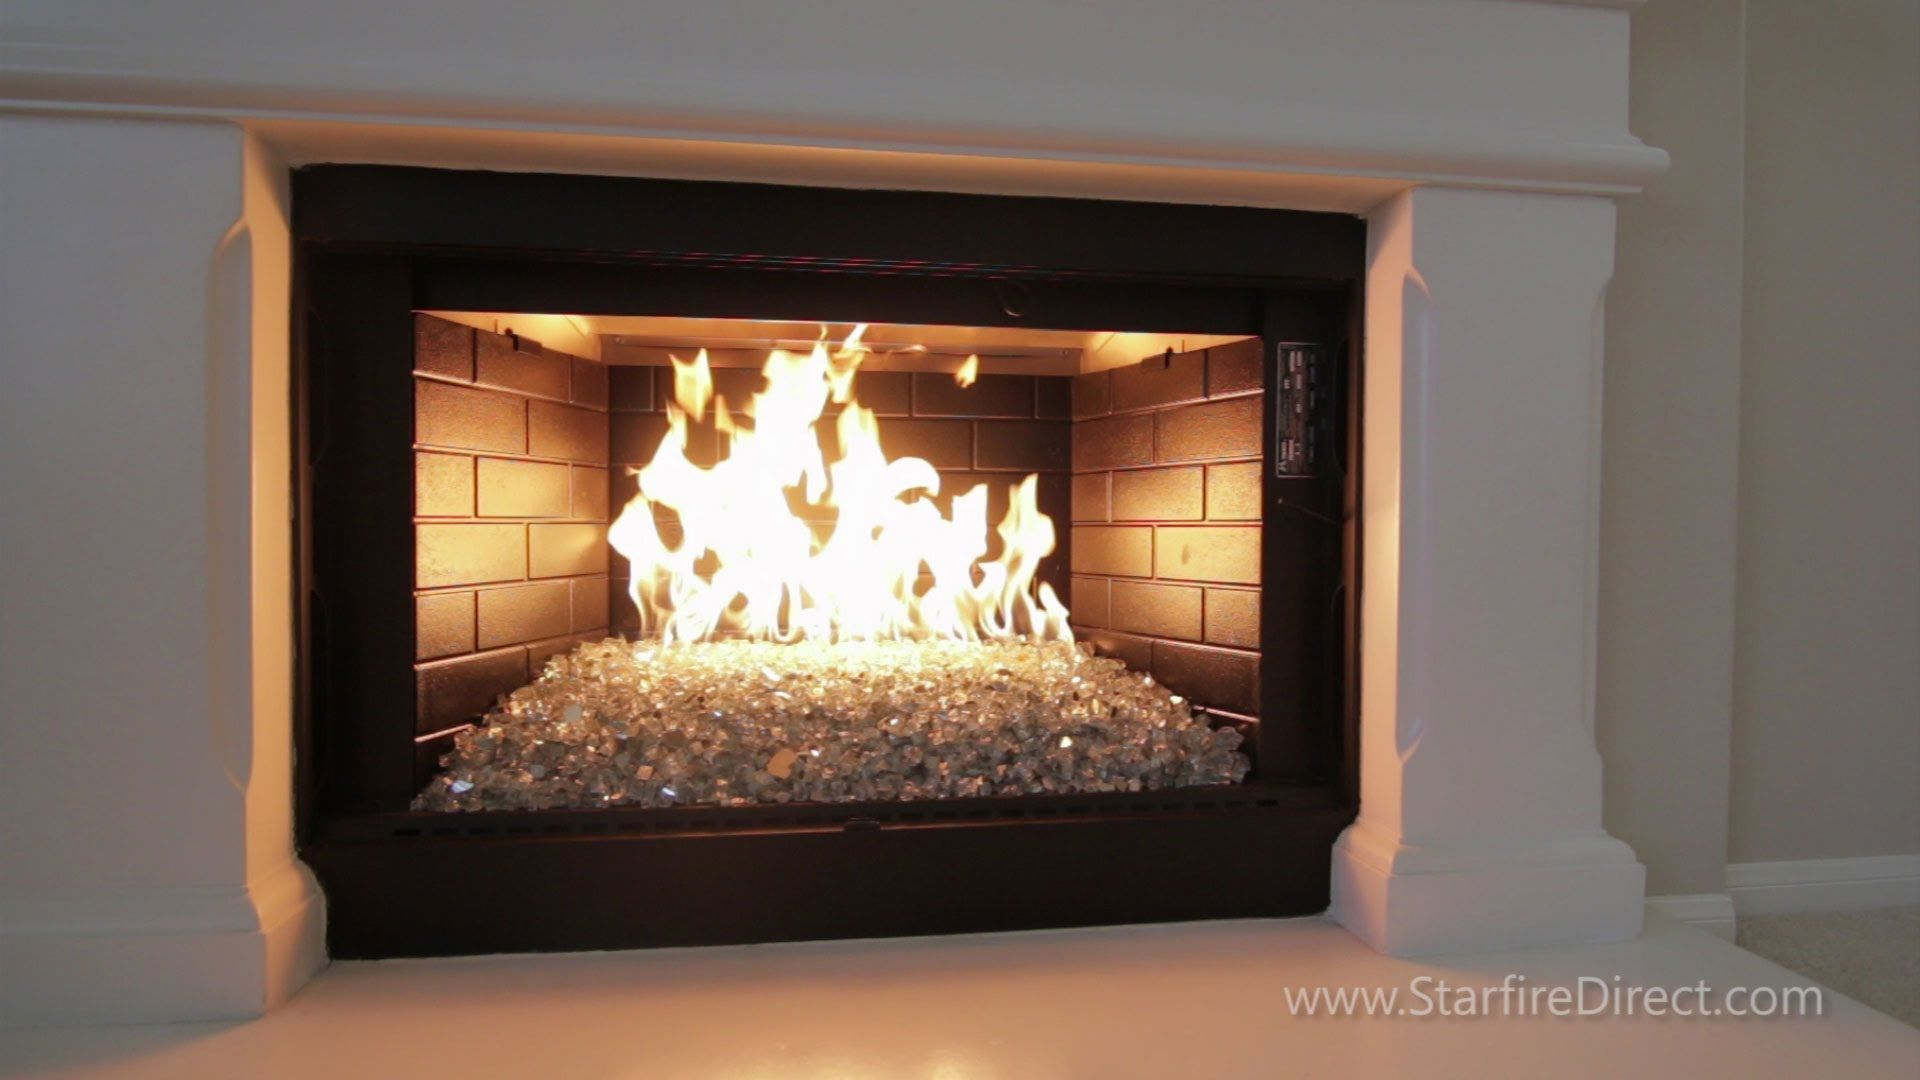 Creative Modern 3 Sided Gas Fireplace Design Fireplace Design Modern Fireplace Fireplace